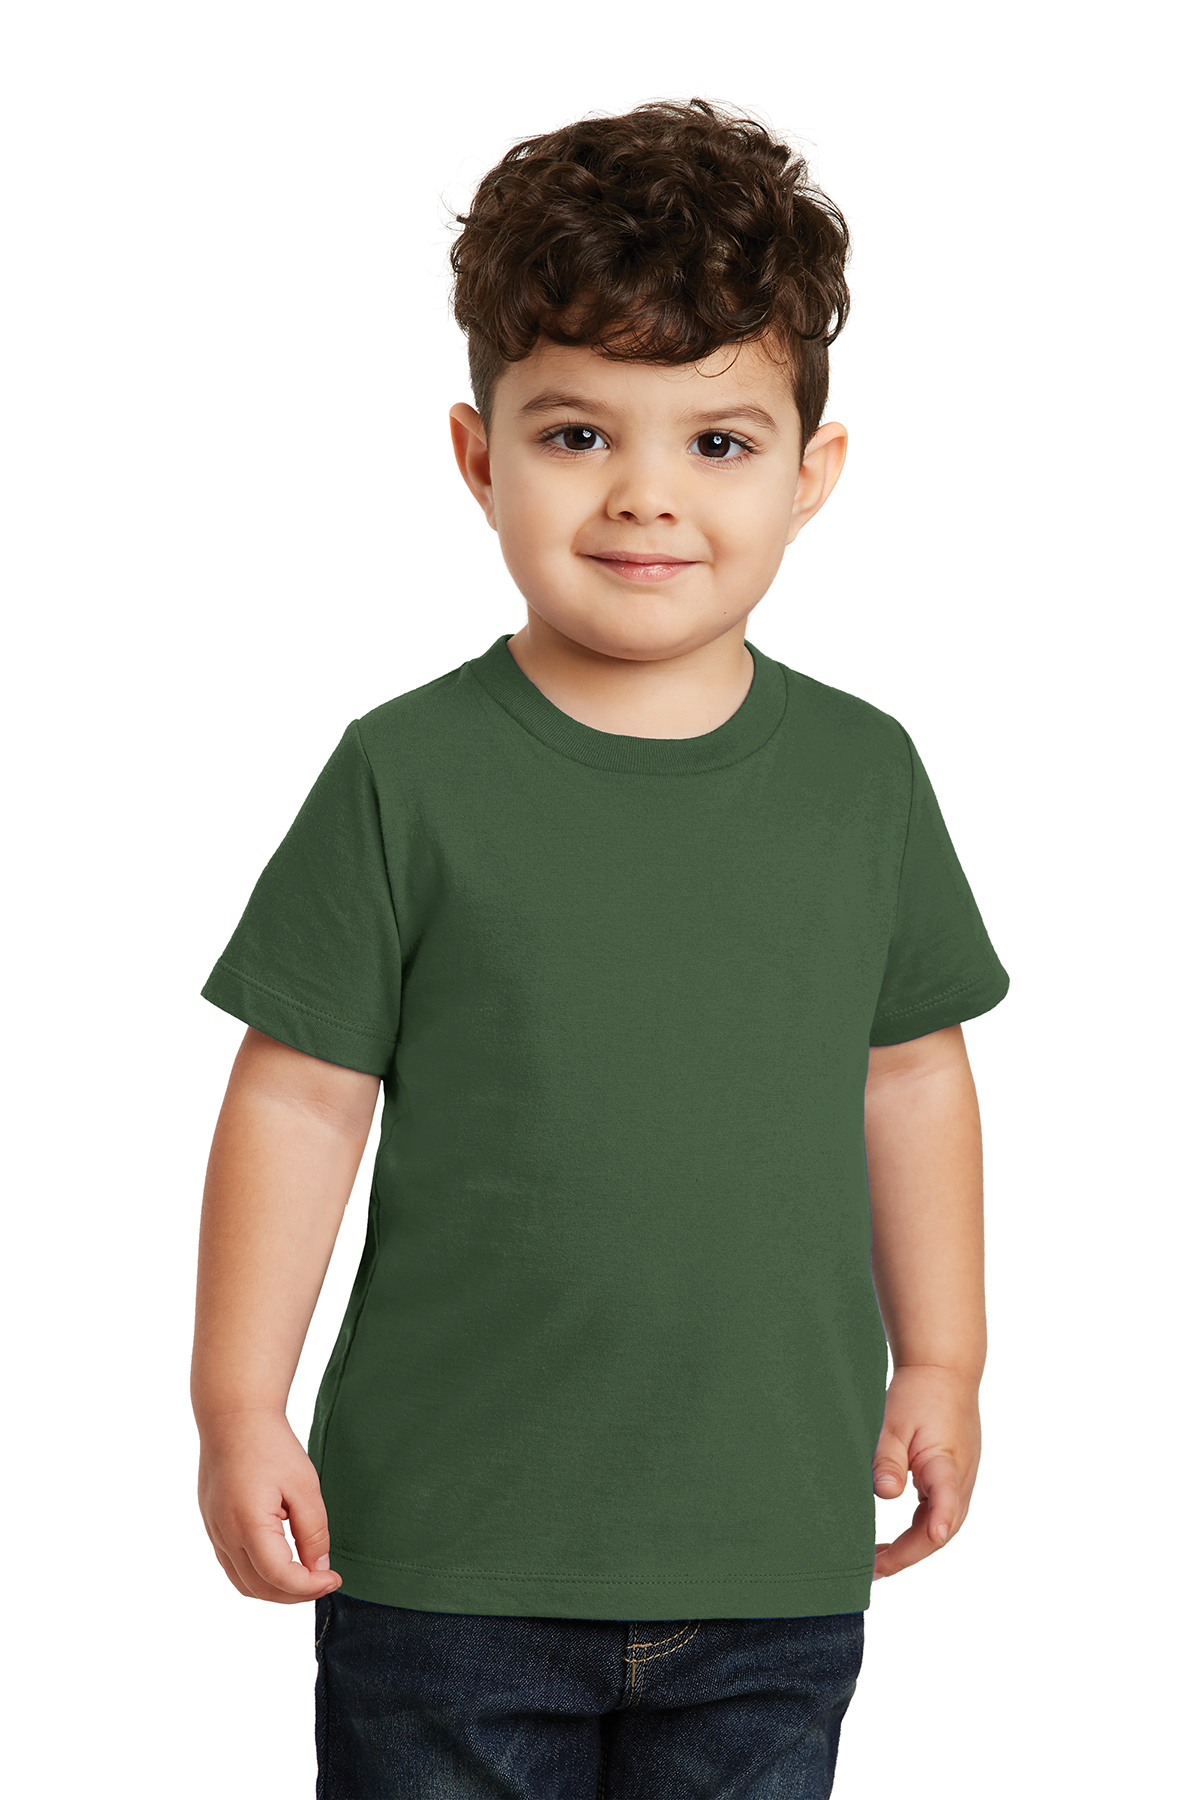 Port & Company® PC450TD - Toddler Fan Favorite Tee